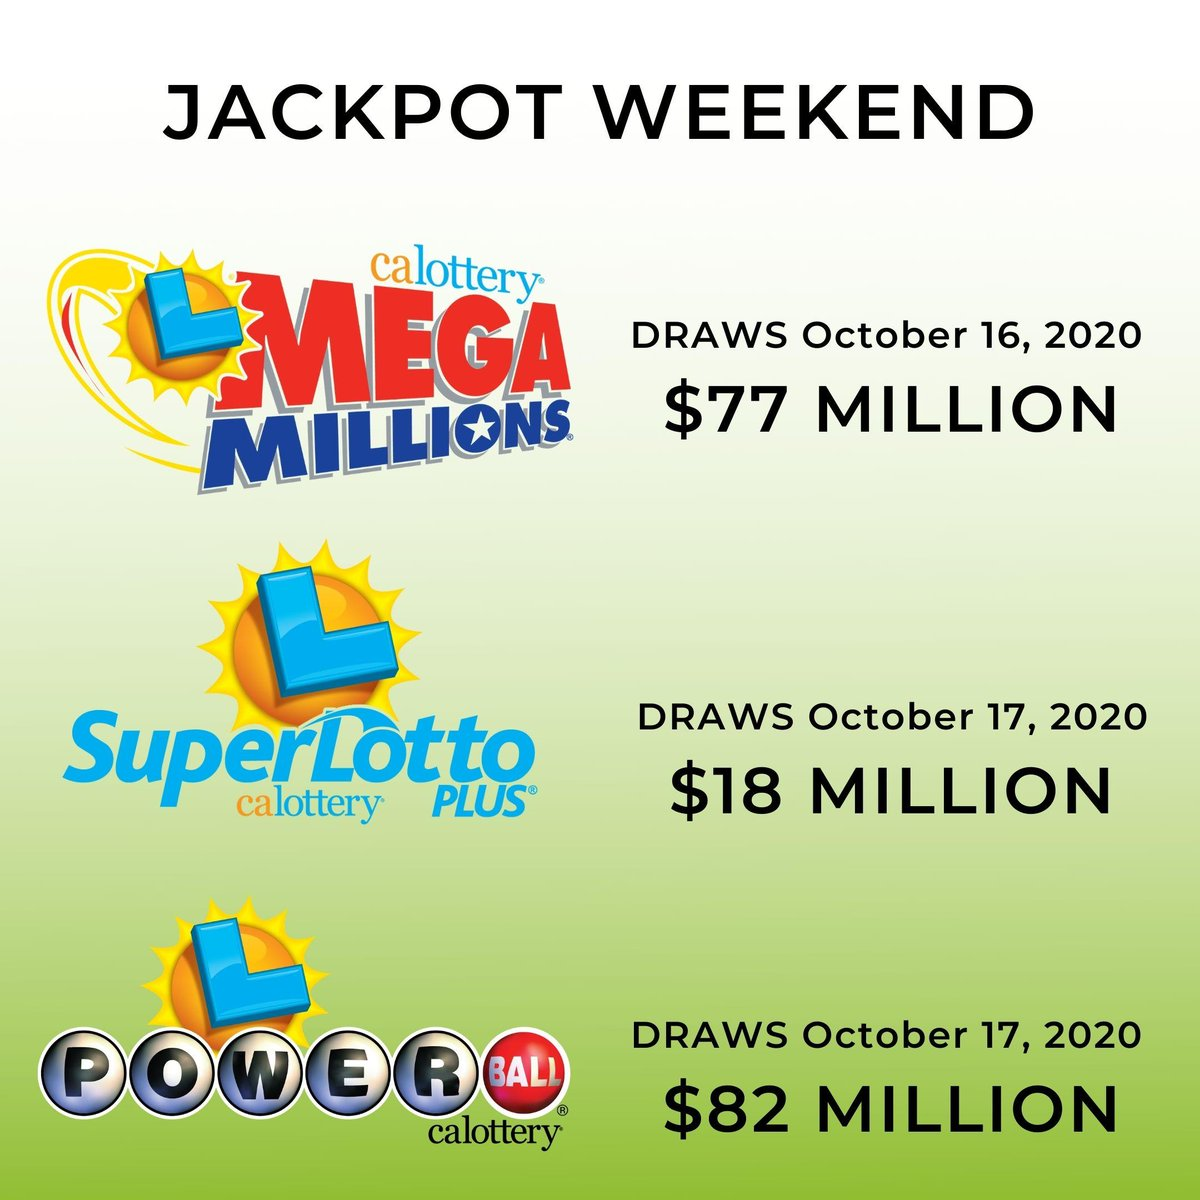 It's Friday! Do you have your tickets to play this weekends jackpots? #MegaMillions #Powerball #SuperlottoPlus #JackpotAlerts #calottery https://t.co/gUtW46XQAx